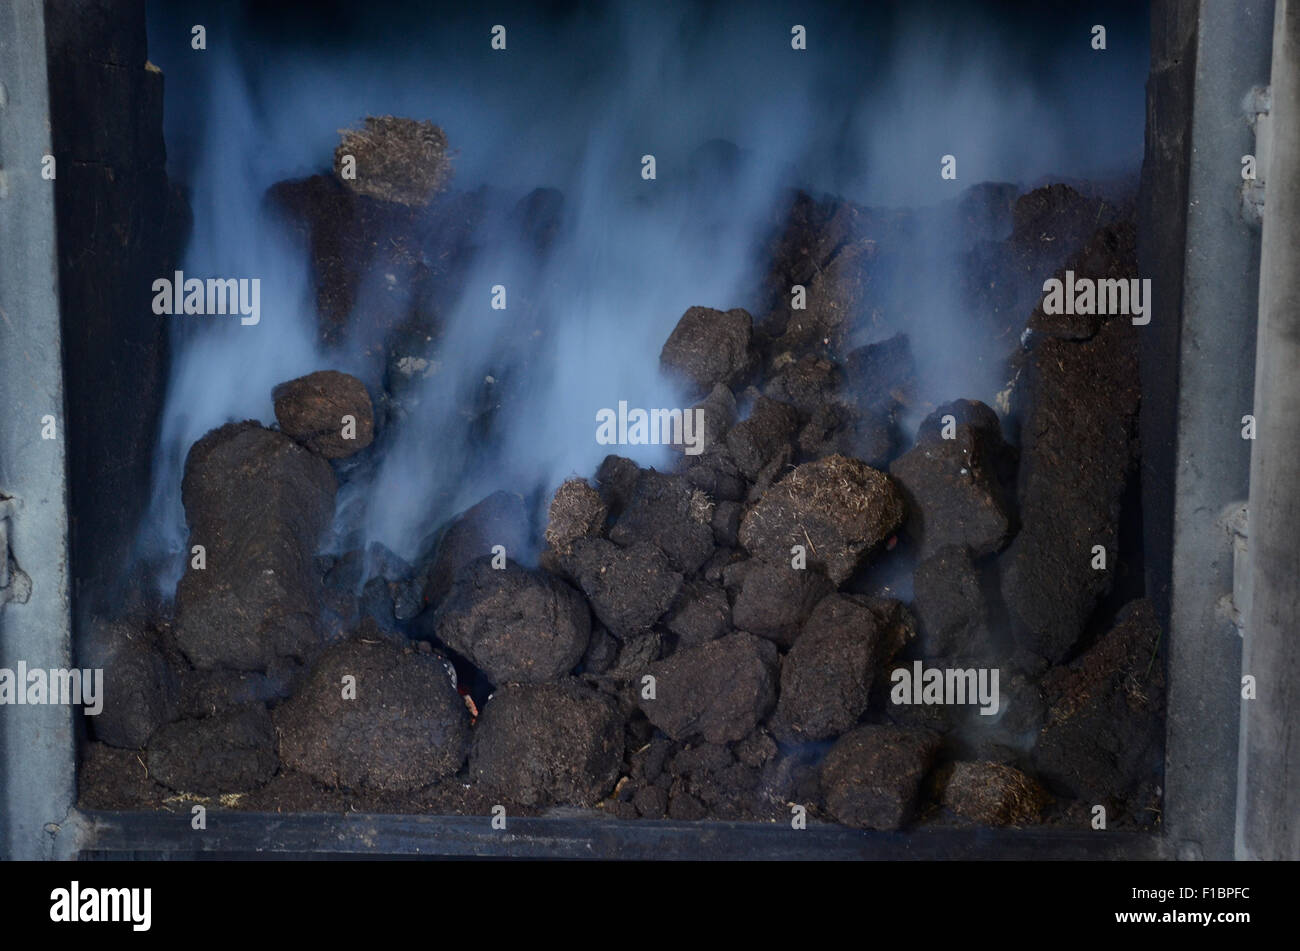 Peat burning in a furnace at the Laphroaig whisky distillery in Islay, Scotland, Great Britain - Stock Image